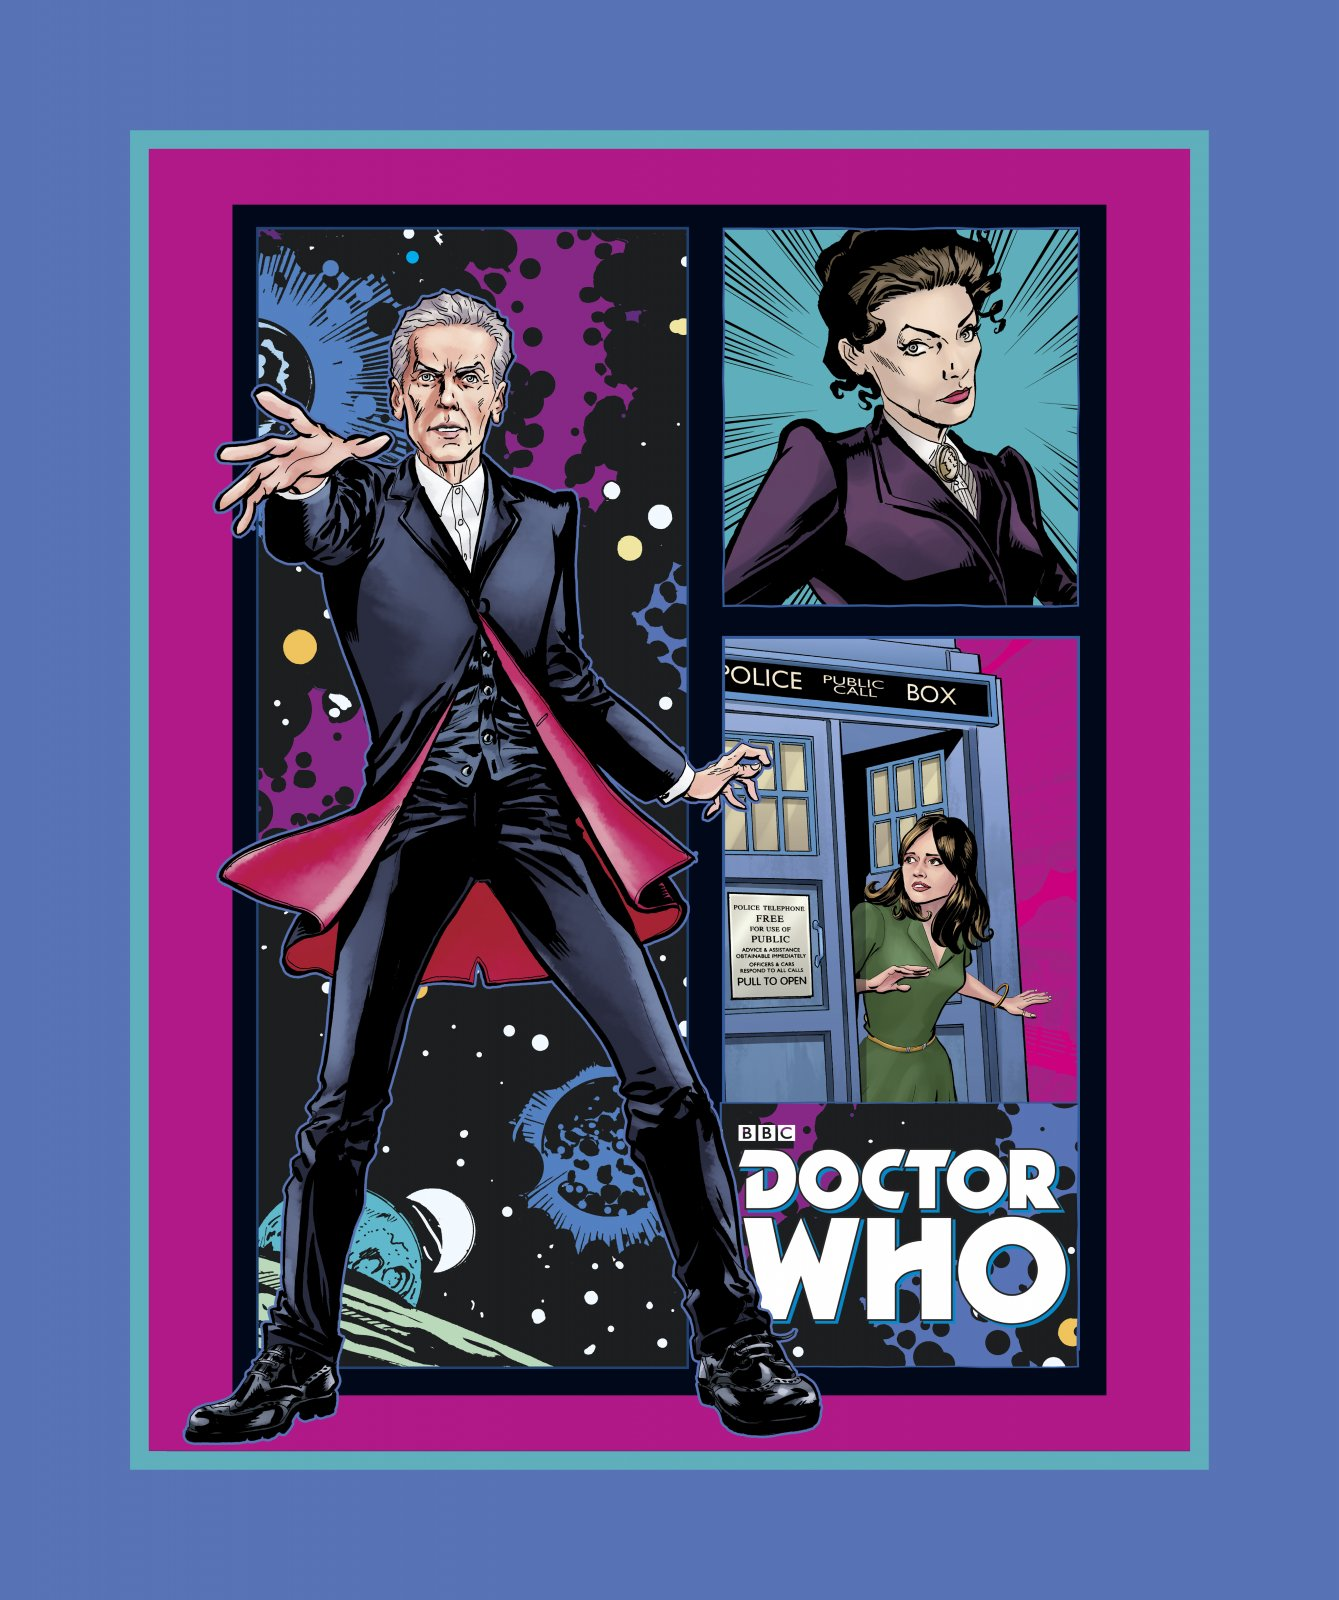 PROMO* SC-Doctor Who 58216 Telephone Box Panel